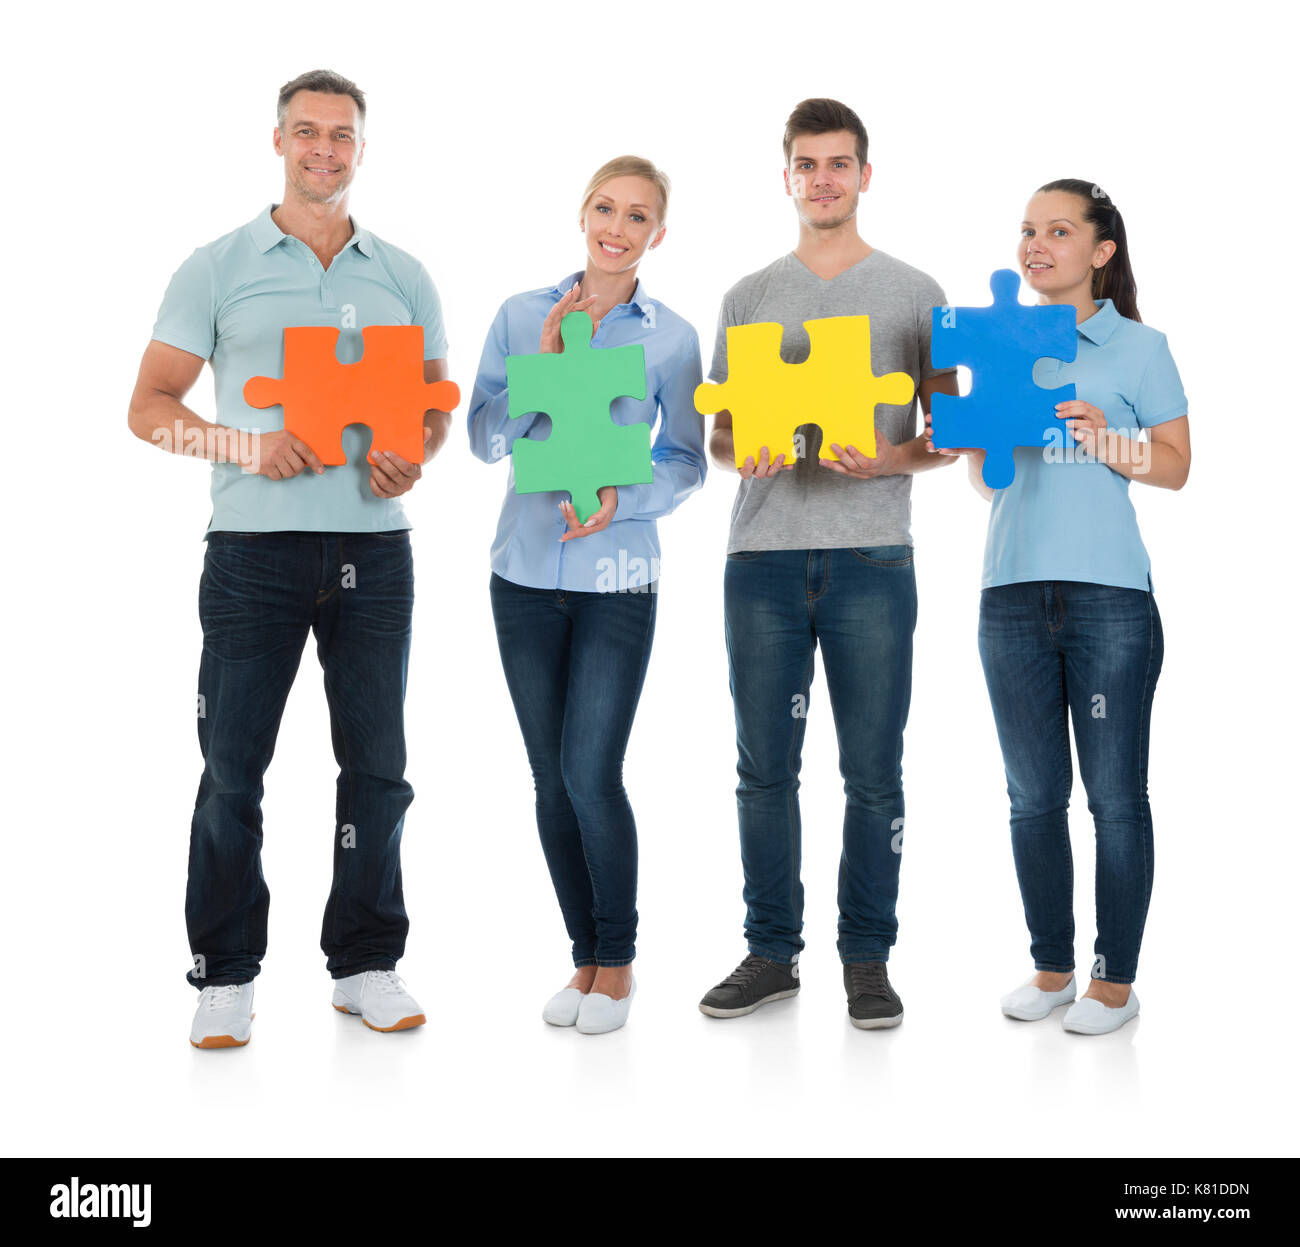 Group Of Happy People Holding Colorful Jigsaw Pieces Over White Background - Stock Image